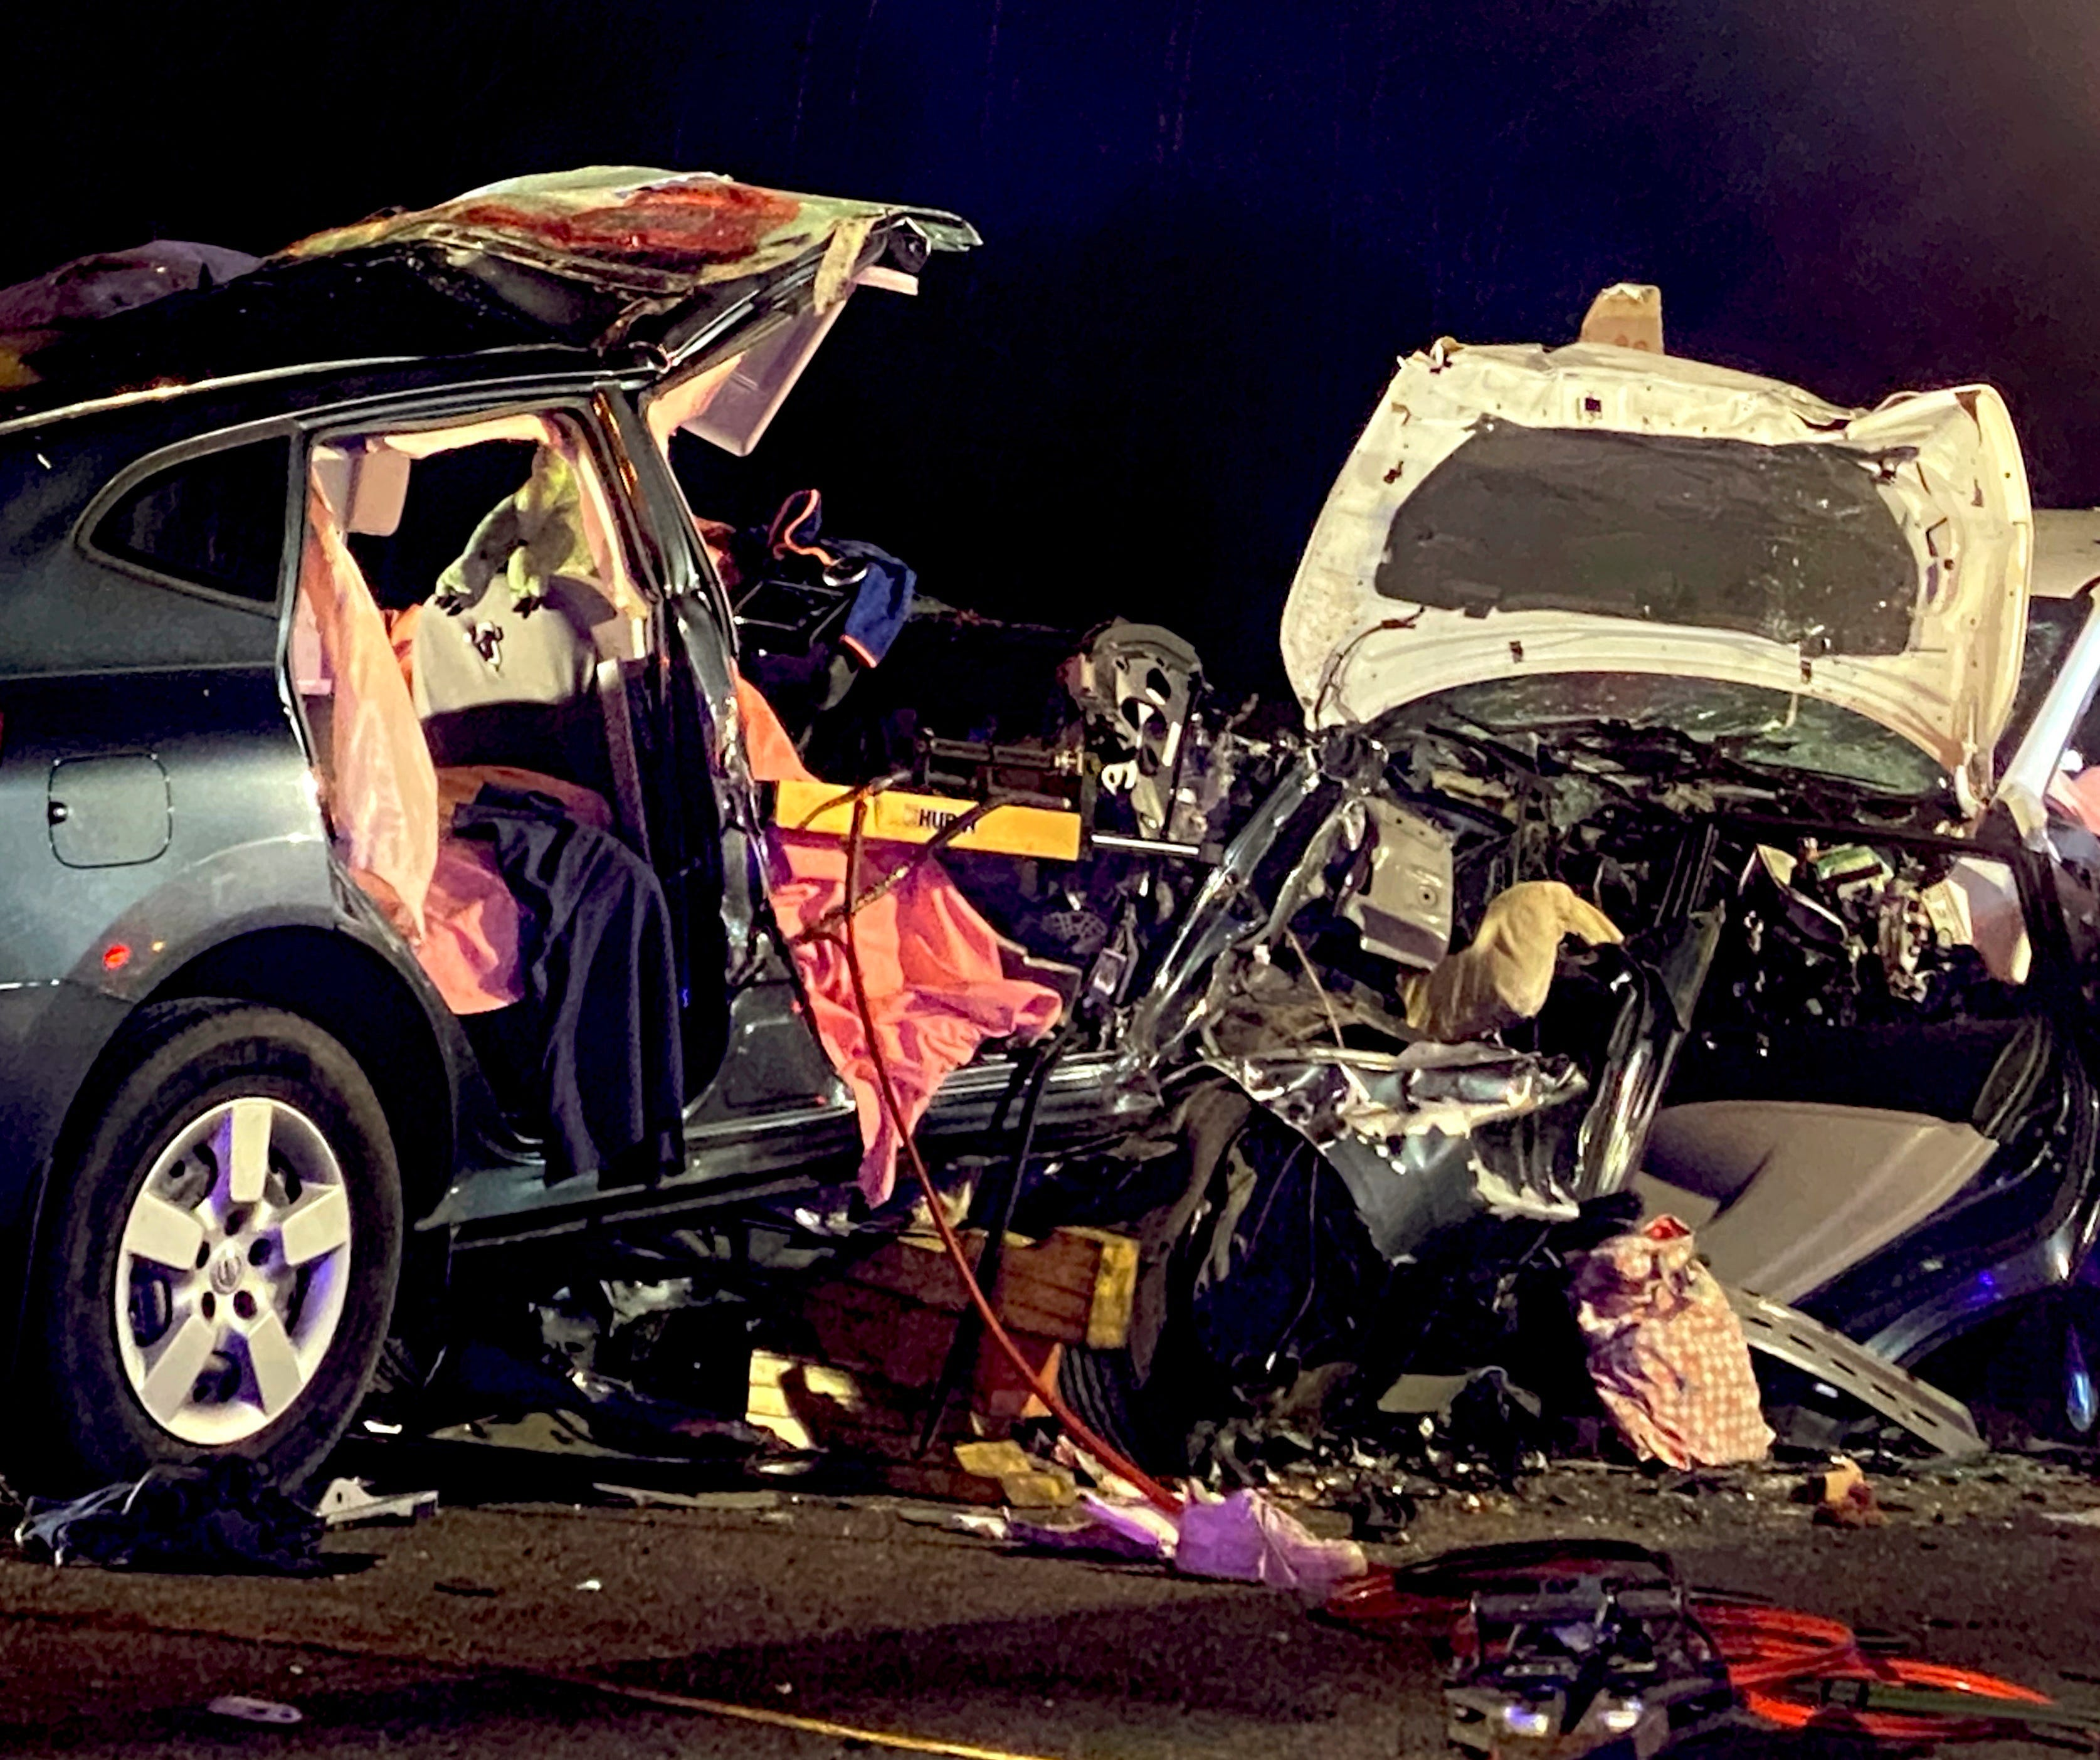 Wrong-way crash on Interstate 95 in Georgia kills 6 people, including Virginia parents and their 3 children